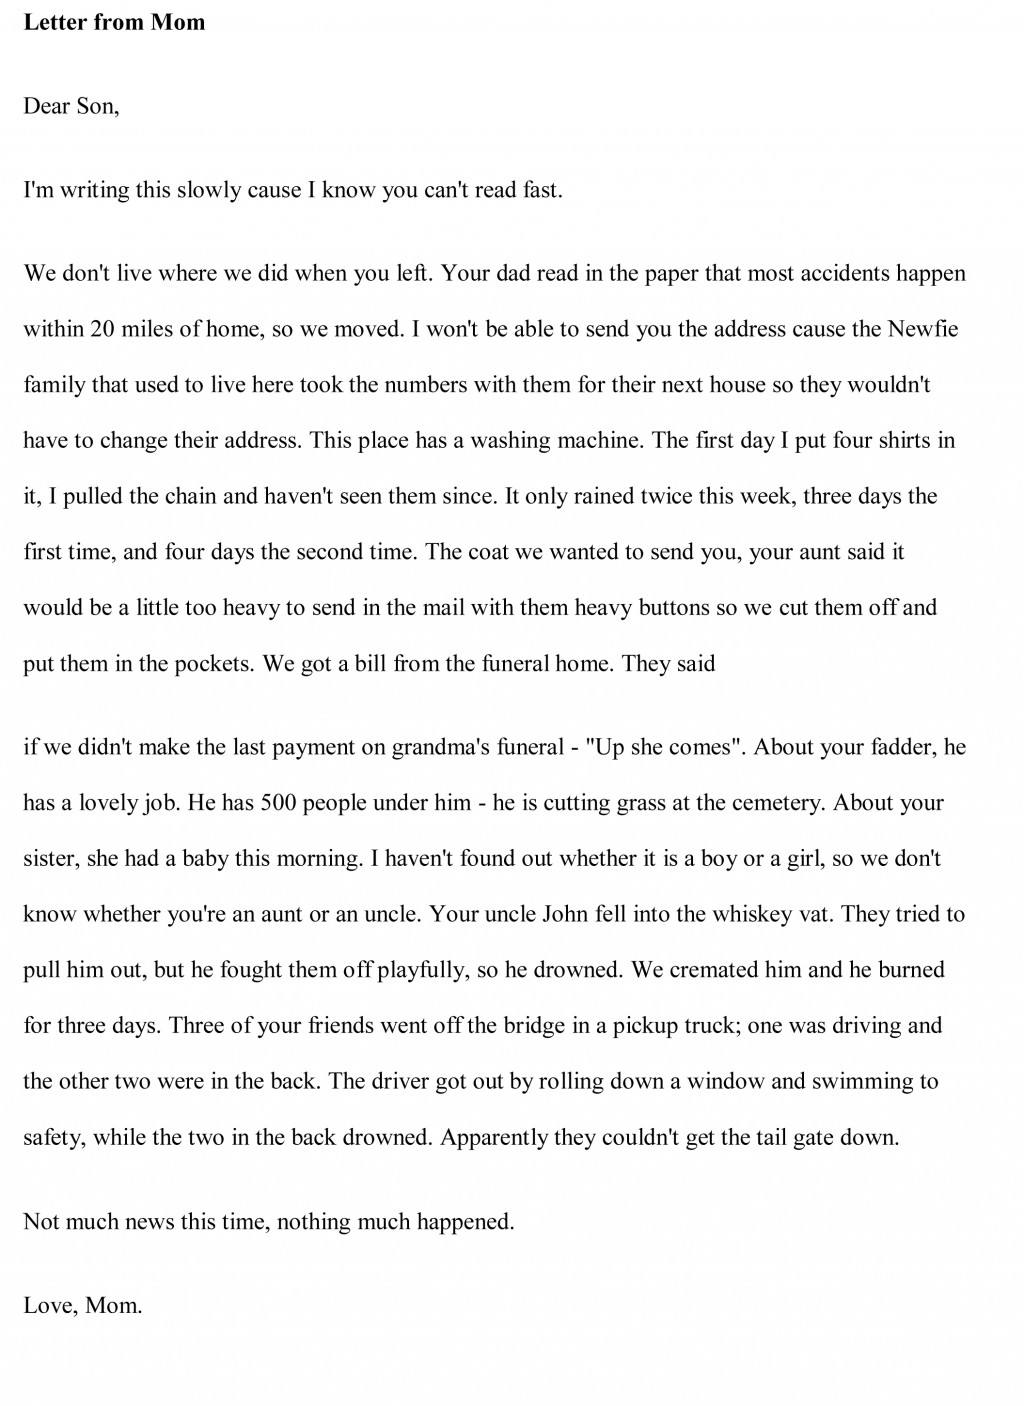 015 Interesting Essay Topics Example Funny Free Amazing Descriptive To Write About For Grade 8 In Urdu Synthesis Large